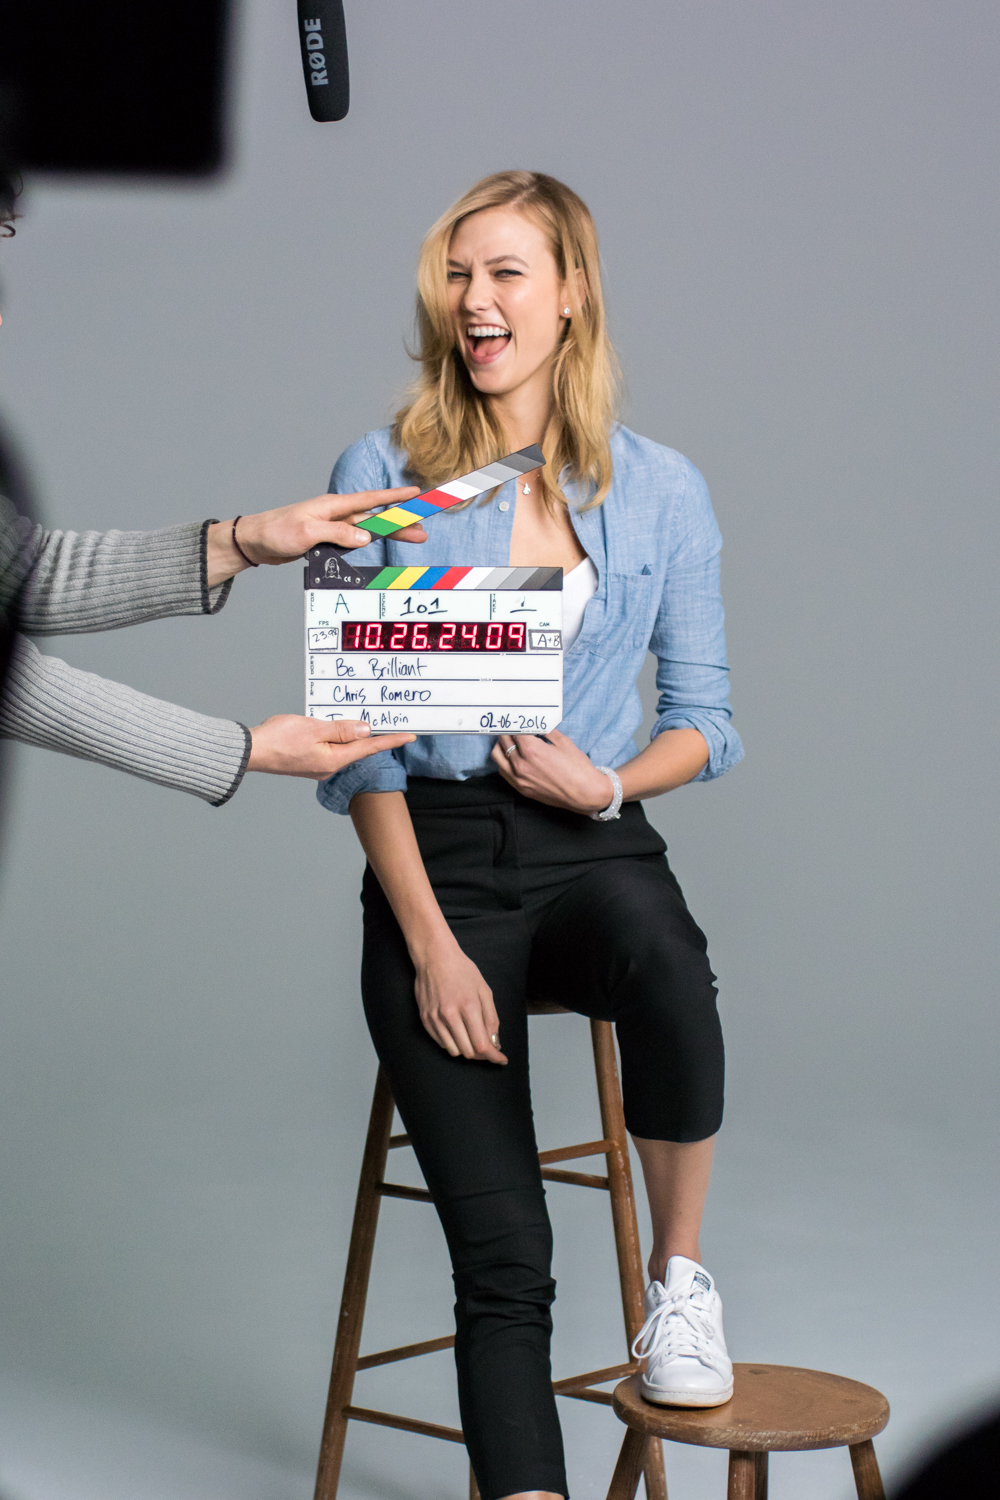 Karlie Kloss Swarovski Behind the Scenes Photography